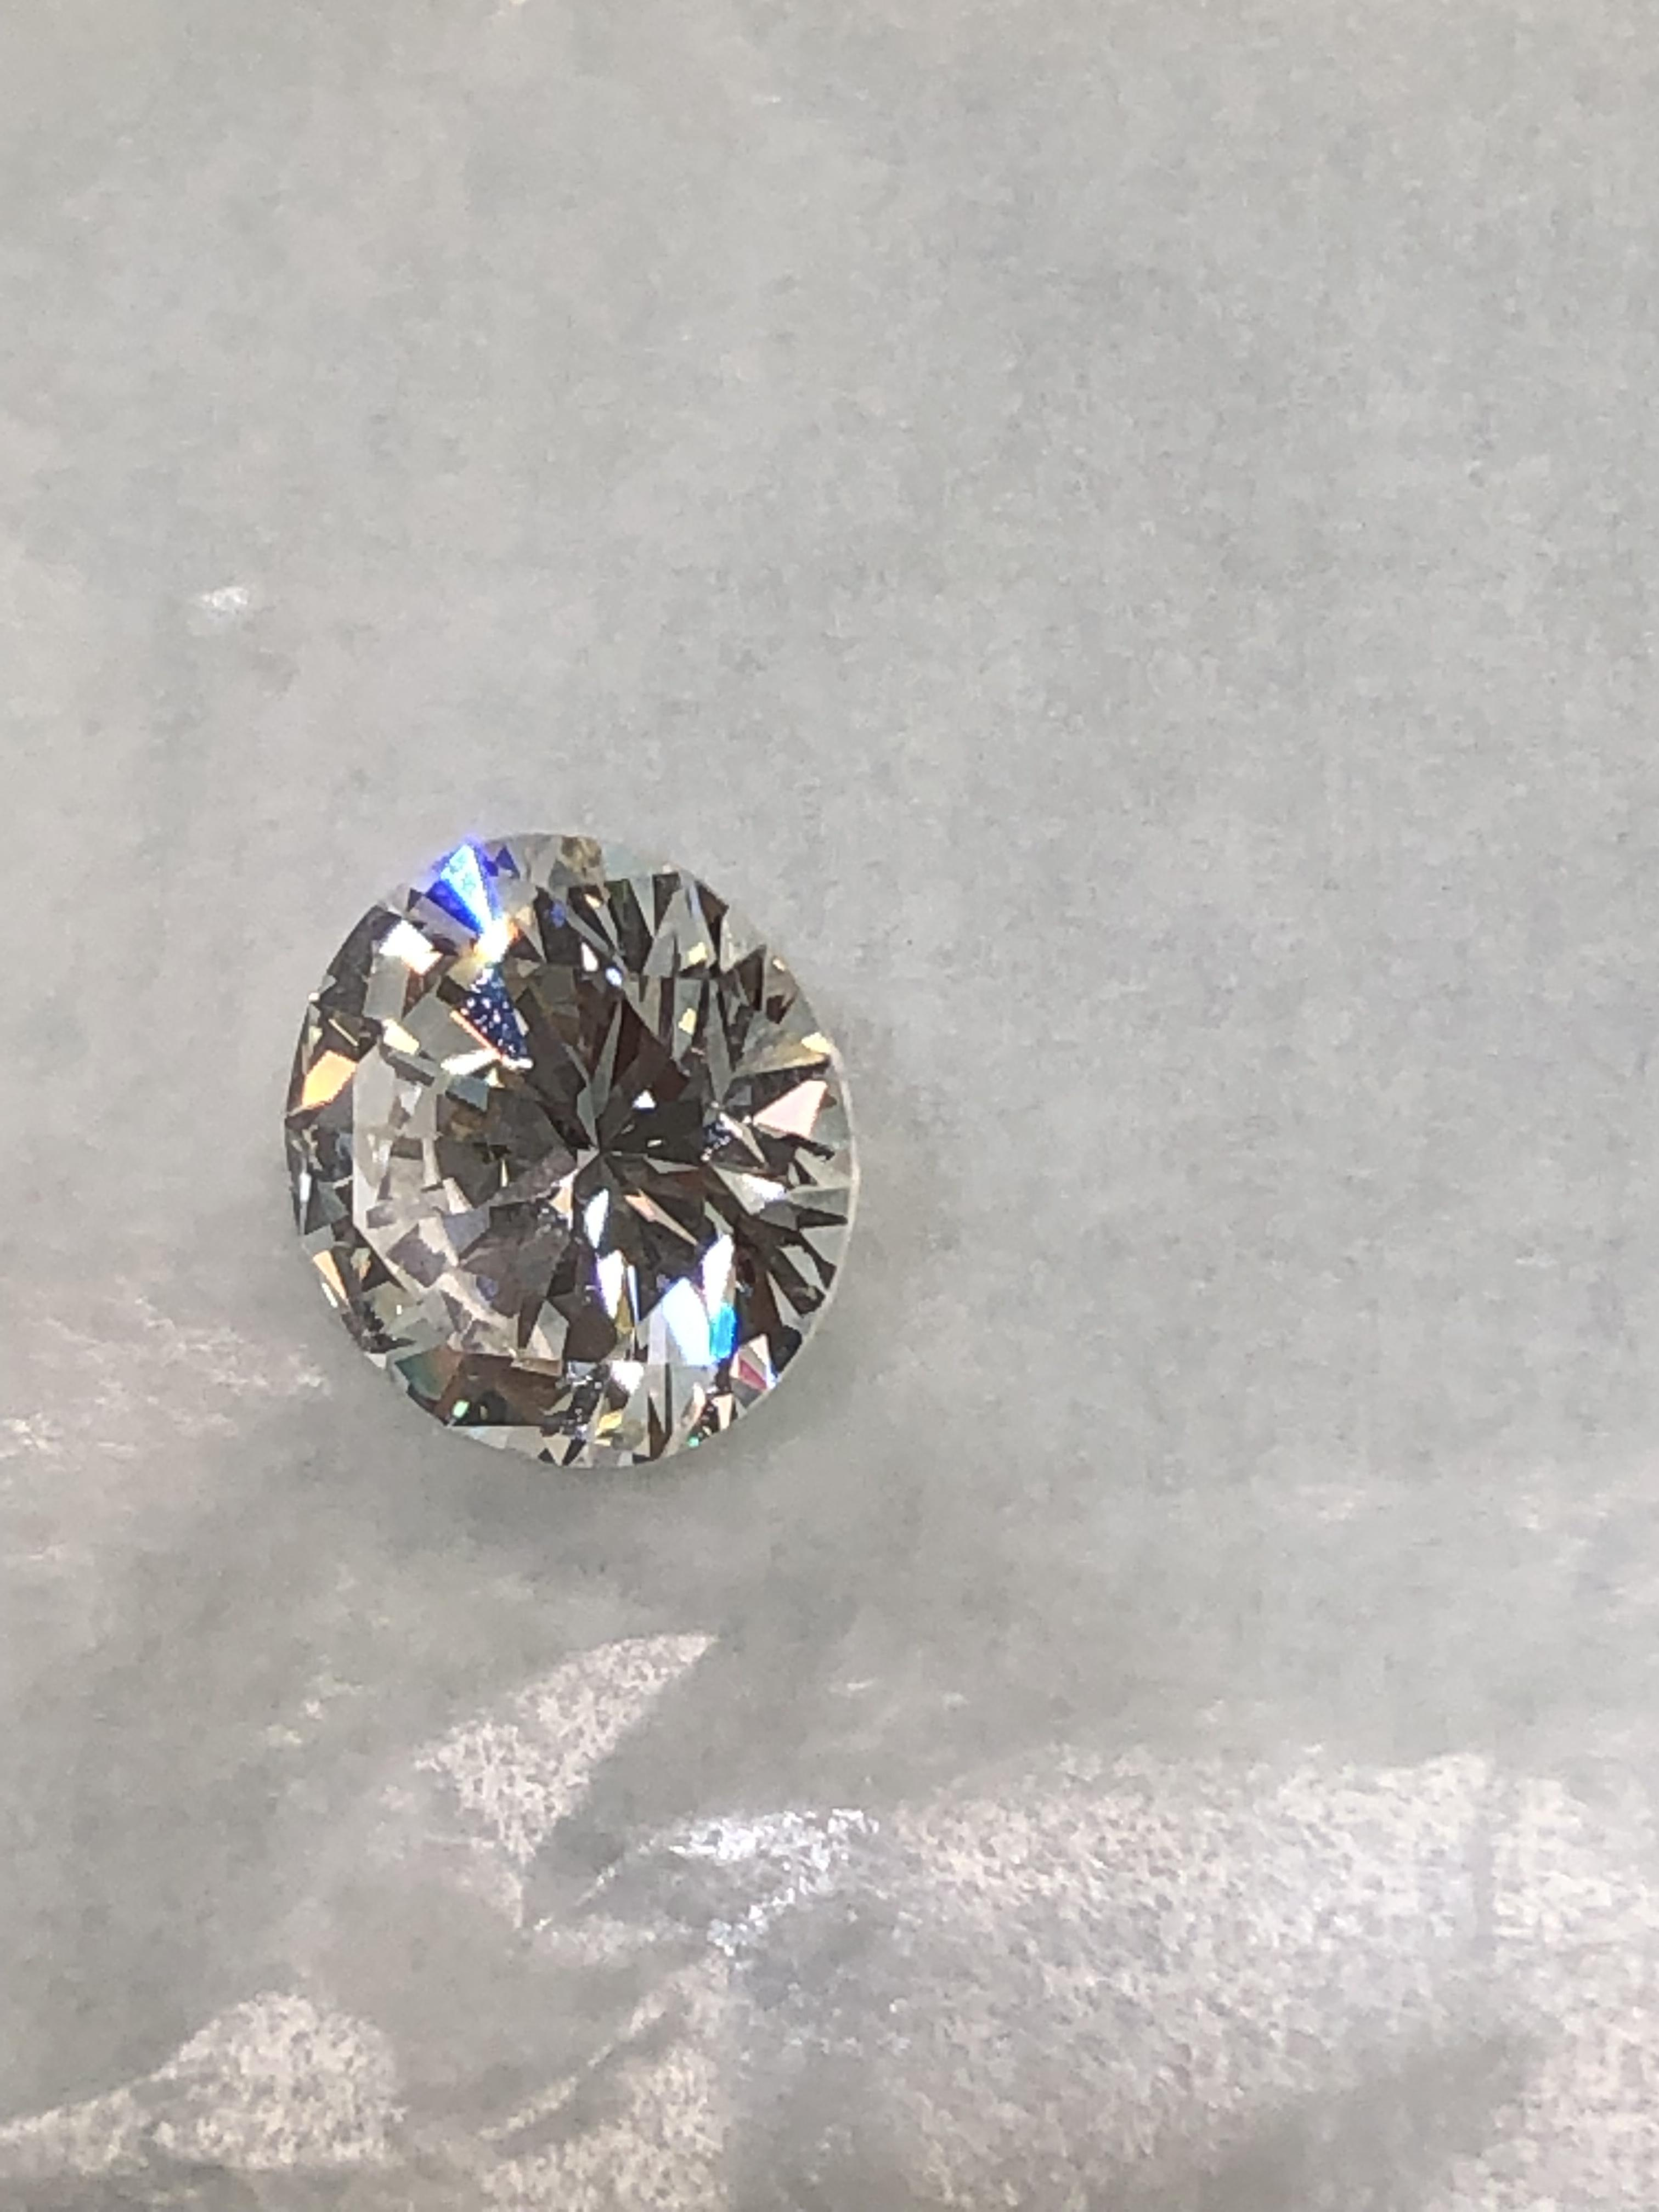 4.14 carats, J in